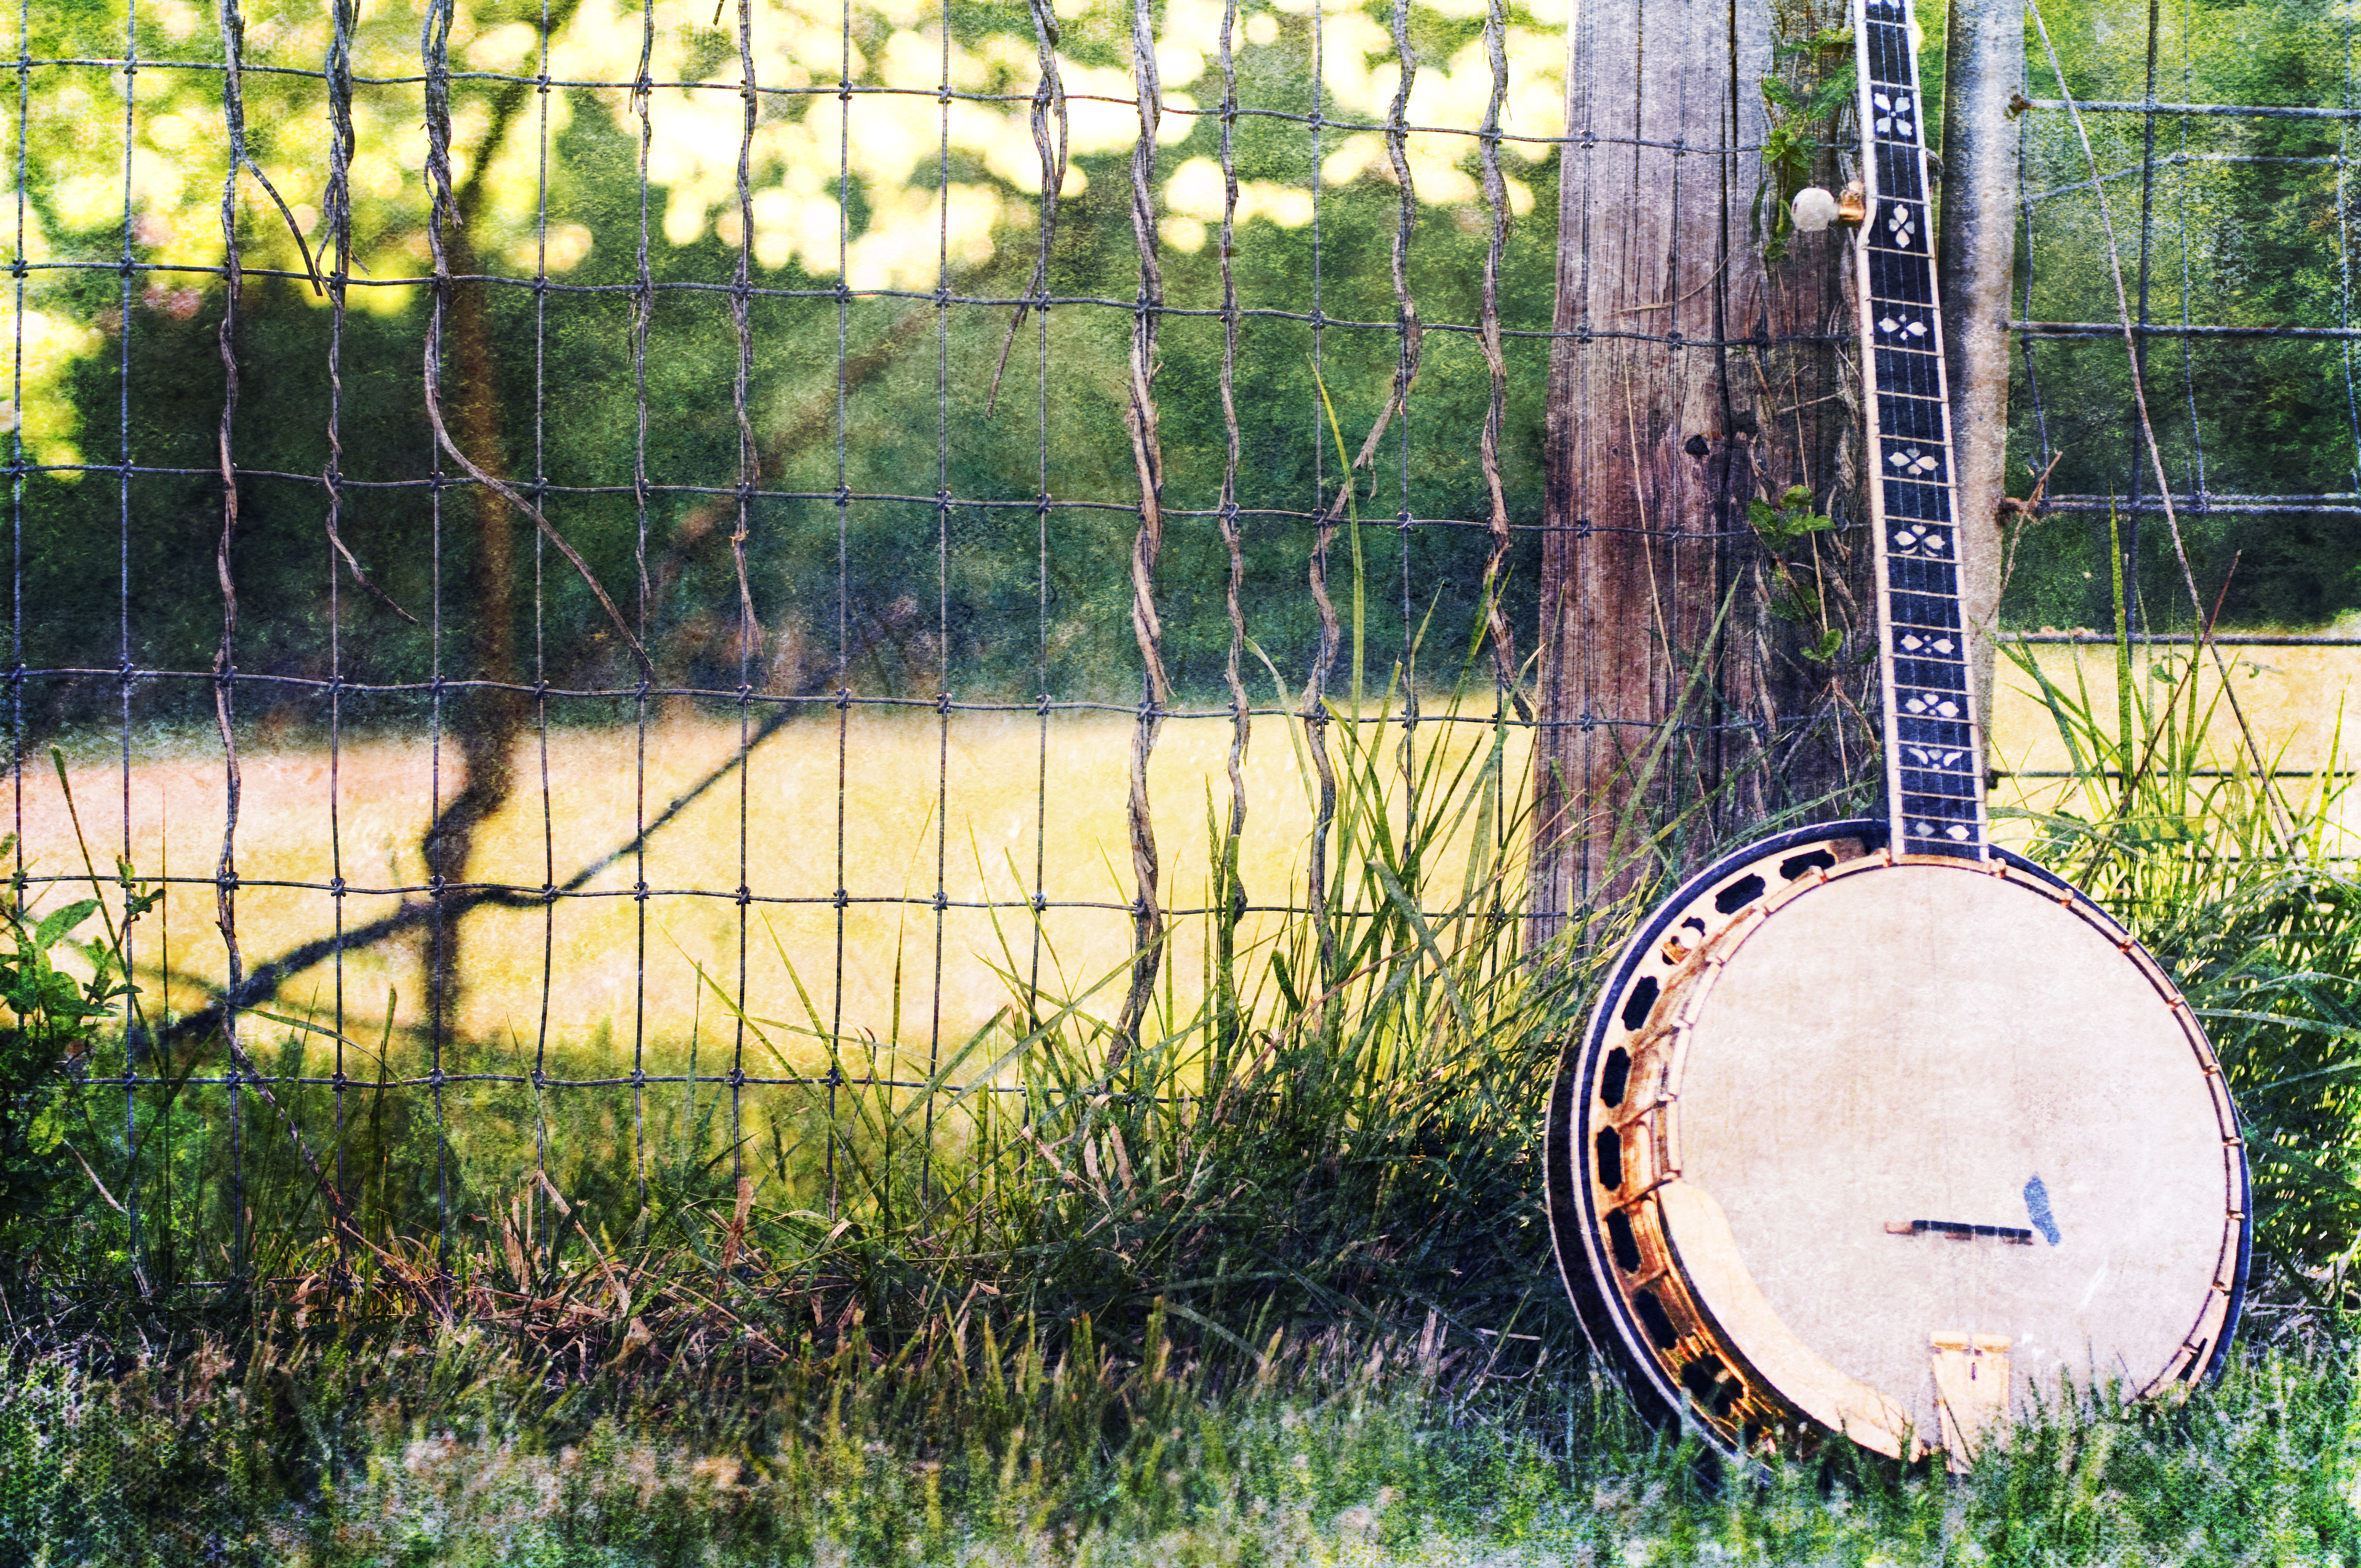 Alpine Summer Concerts in the Park: Blue Creek Band